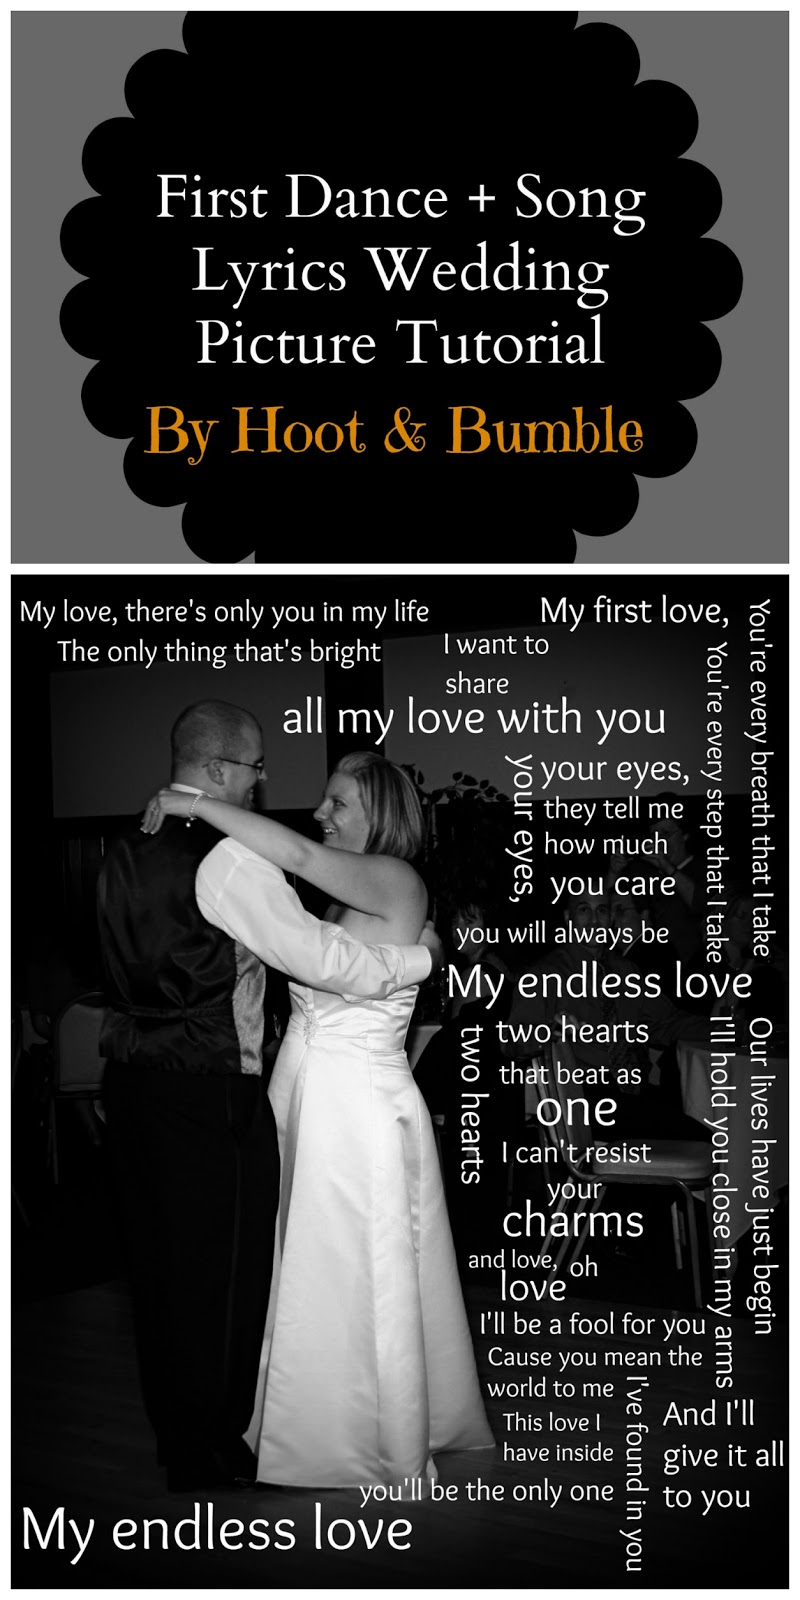 First Dance Song Lyrics Wedding Picture Part 2 How To Make A Photo Canvas